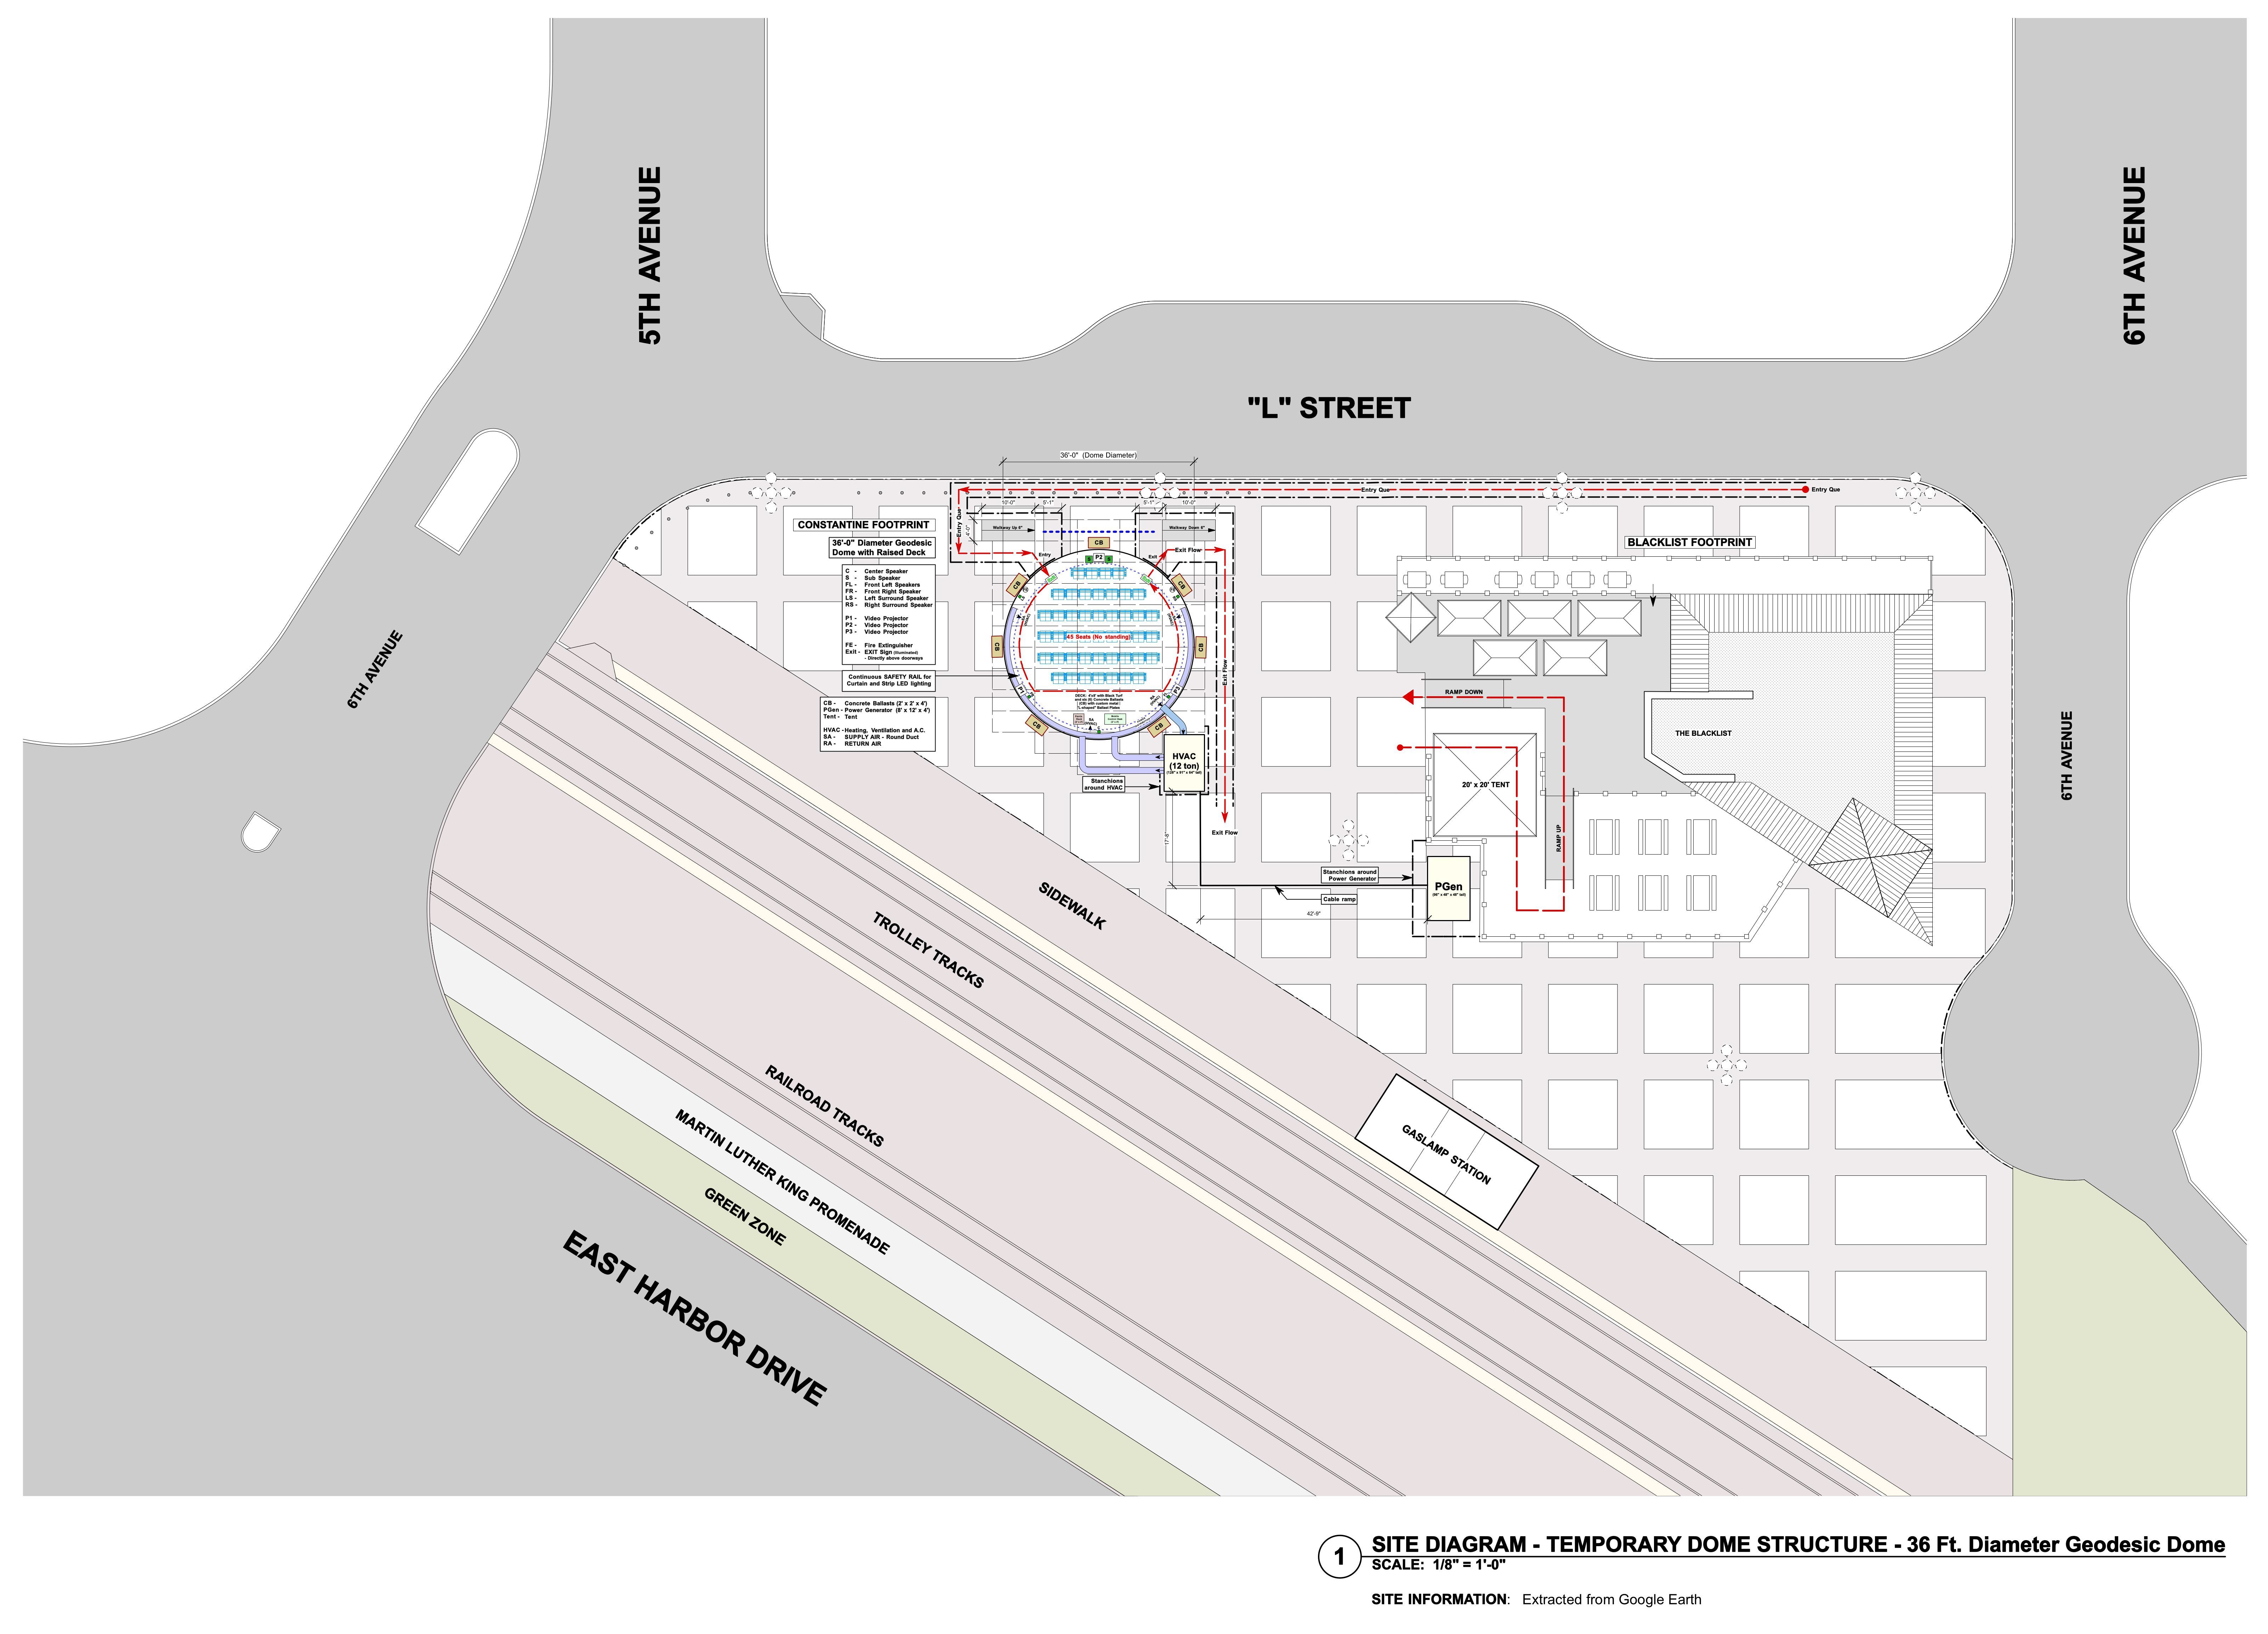 COMICON DOME (San Diego) SITE PLAN